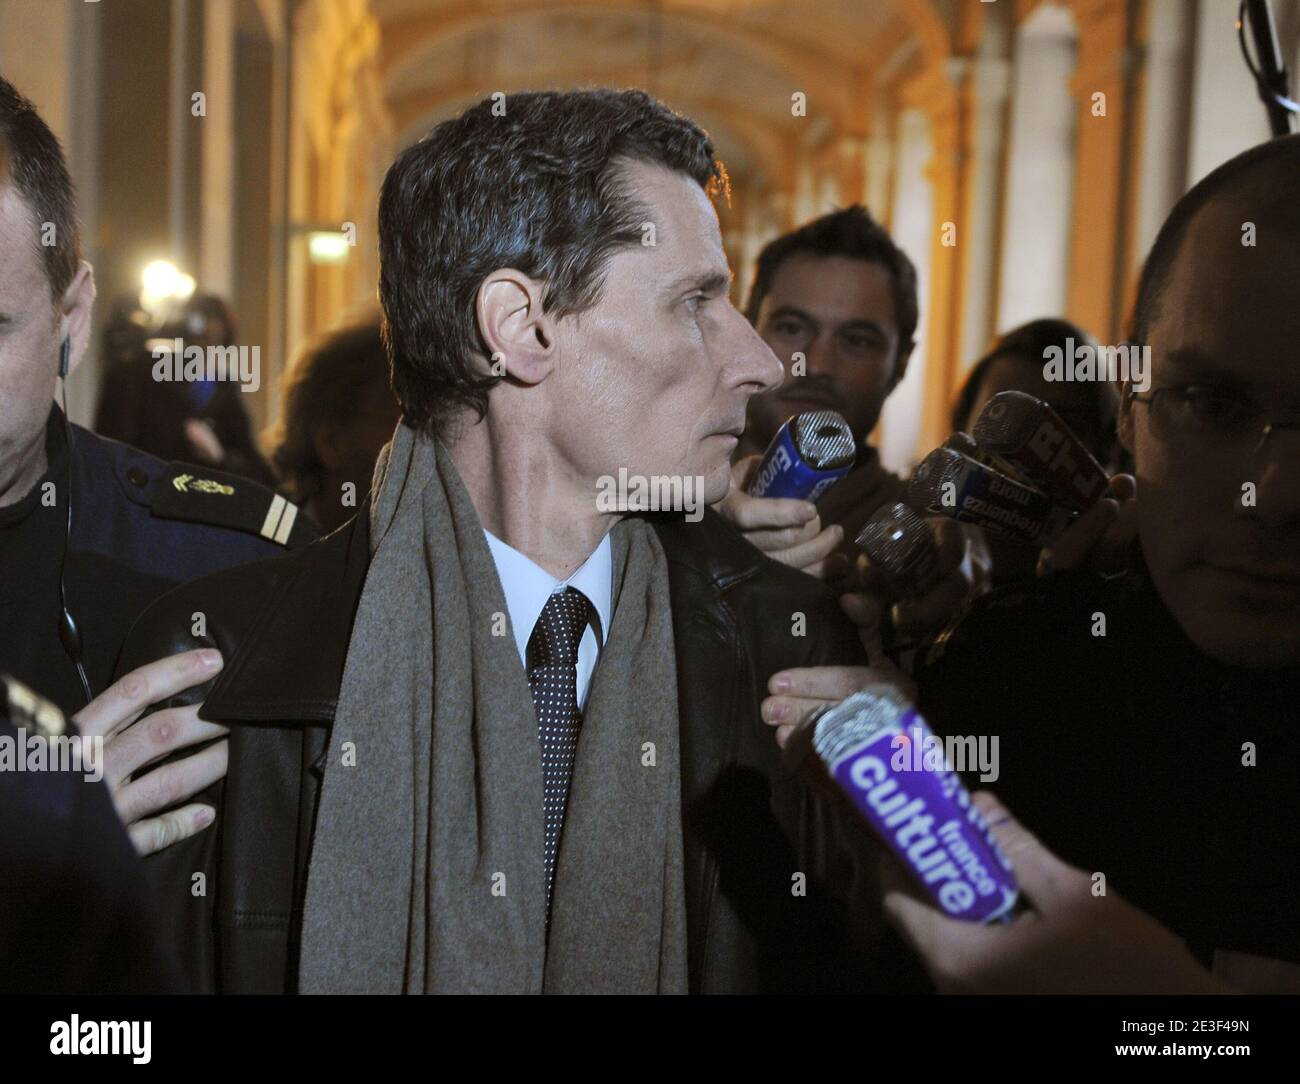 Witness and French police officer Didier Vinolas speaks to the press when he leaves the Paris courthouse after being heard during the trial of Yvan Colonna in Paris, France, on February 17, 2009 tried for the assassination of Corsica's prefect Claude Erignac in 1998. The appeal process is calling for a new investigation following the release of fresh information from Vinolas. Photo by Mousse/ABACAPRESS.COM Stock Photo